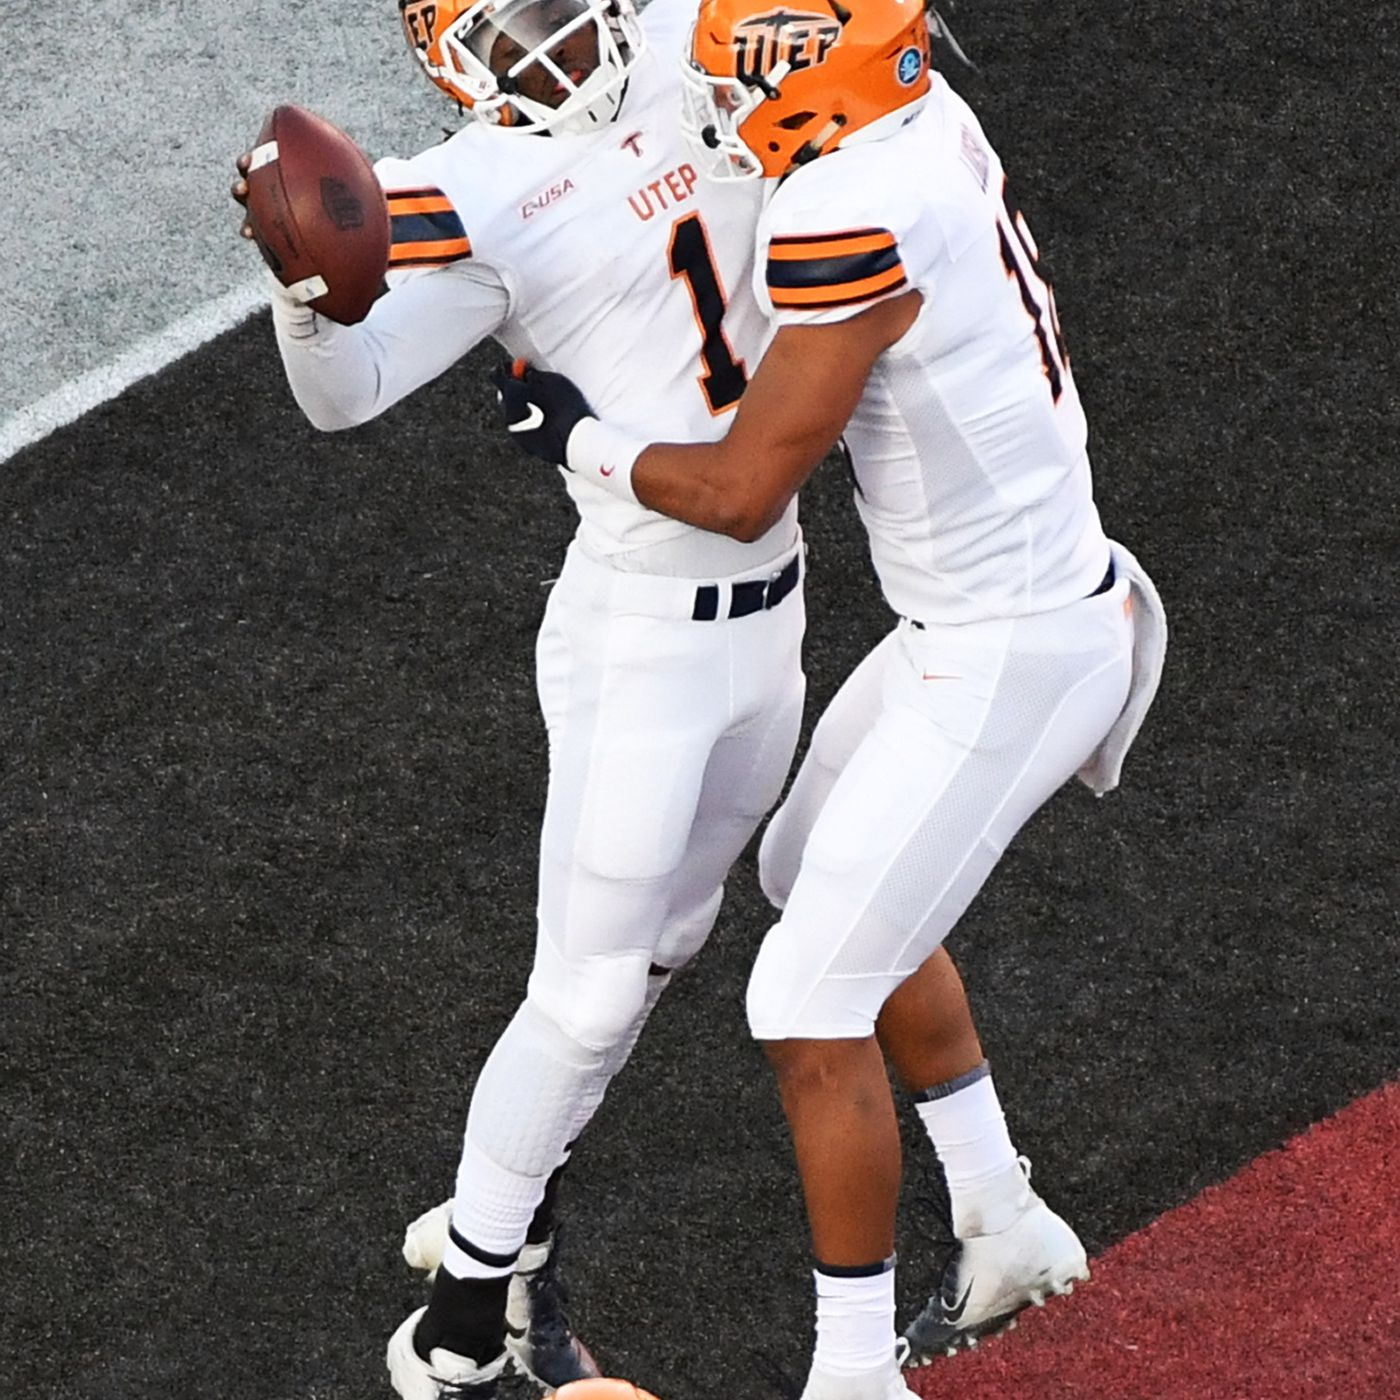 new concept 73ccc 45941 Tennessee Football Opponent Preview: UTEP Miners - Rocky Top ...